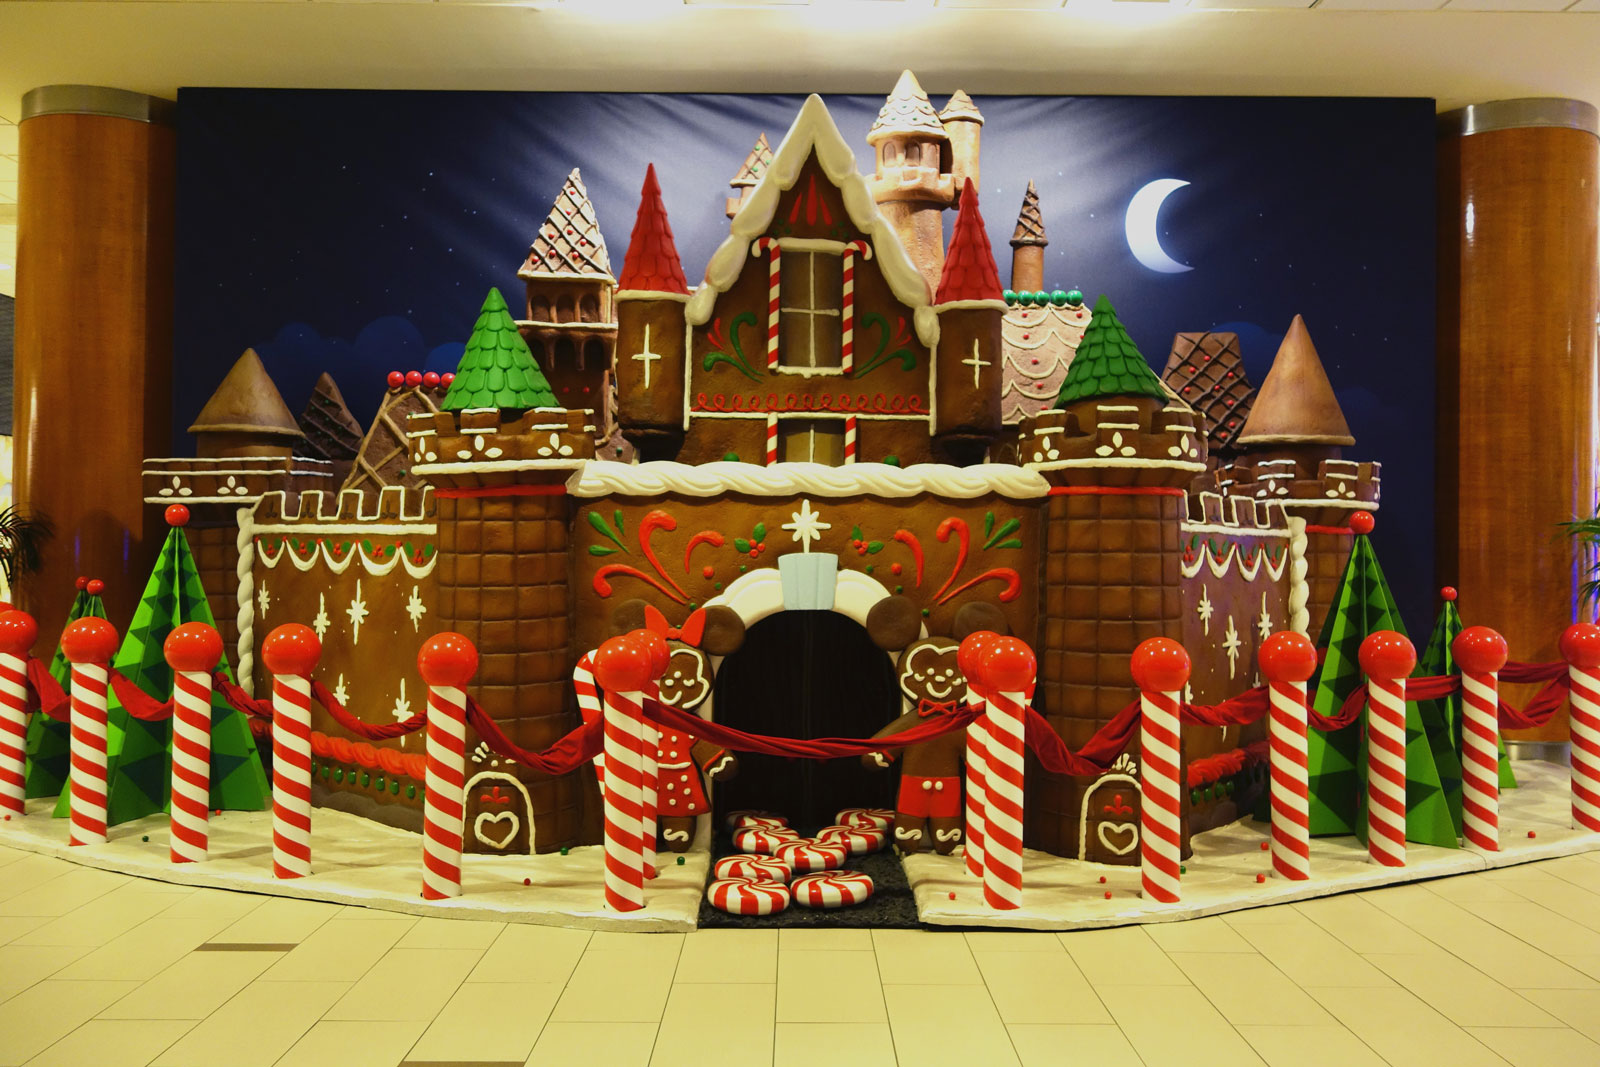 Disnetland Hotel Gingerbread House